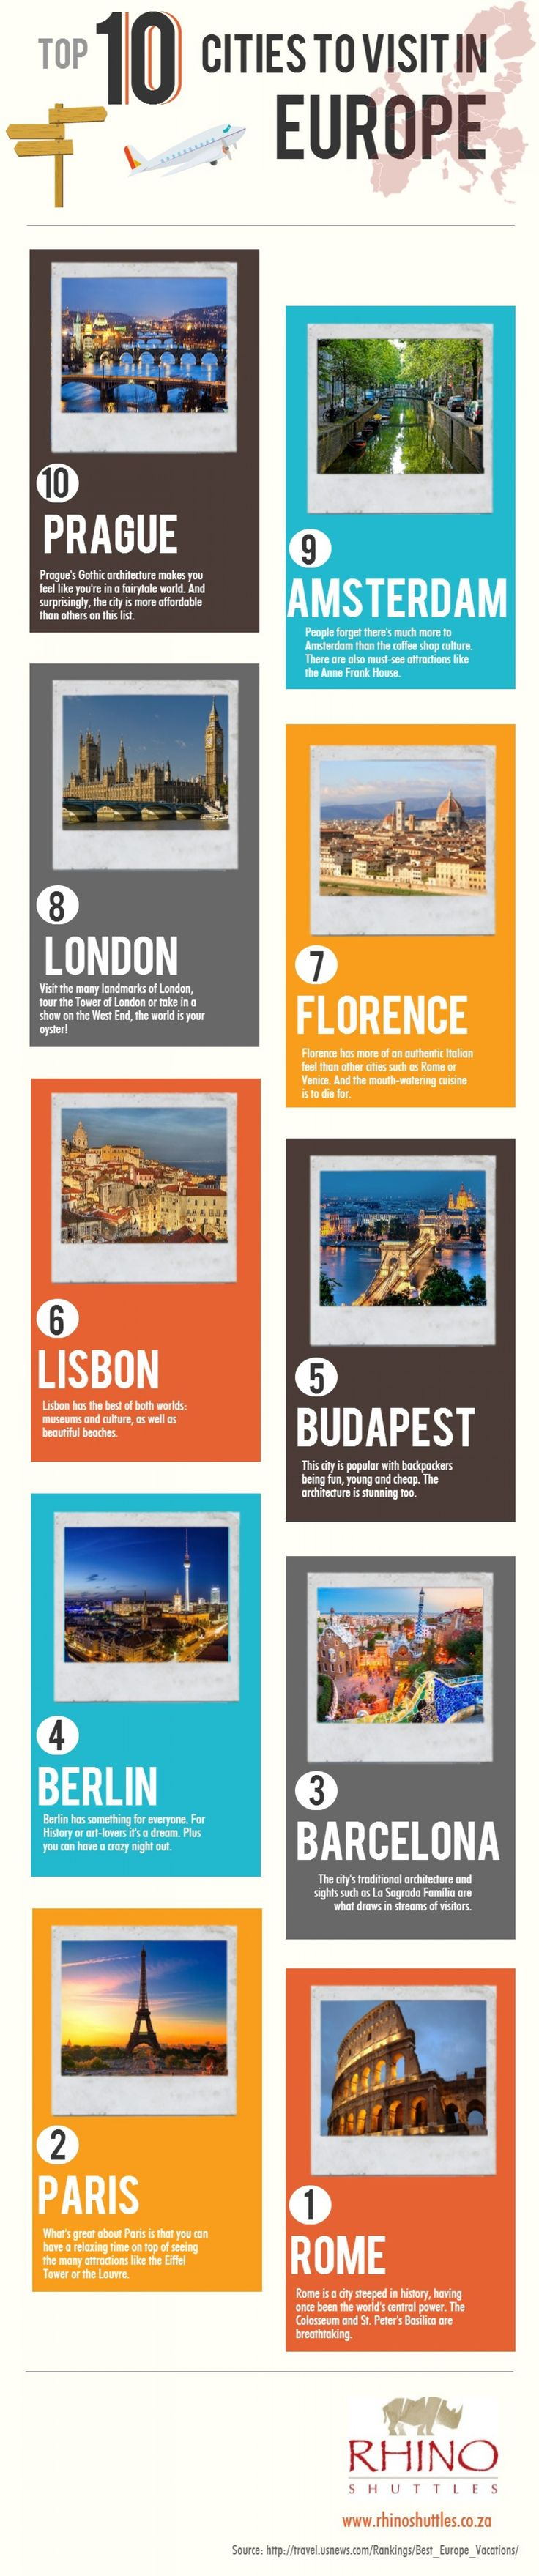 Top 10 Cities To Visit In Europe; 2 out of 10 so far: London & Paris